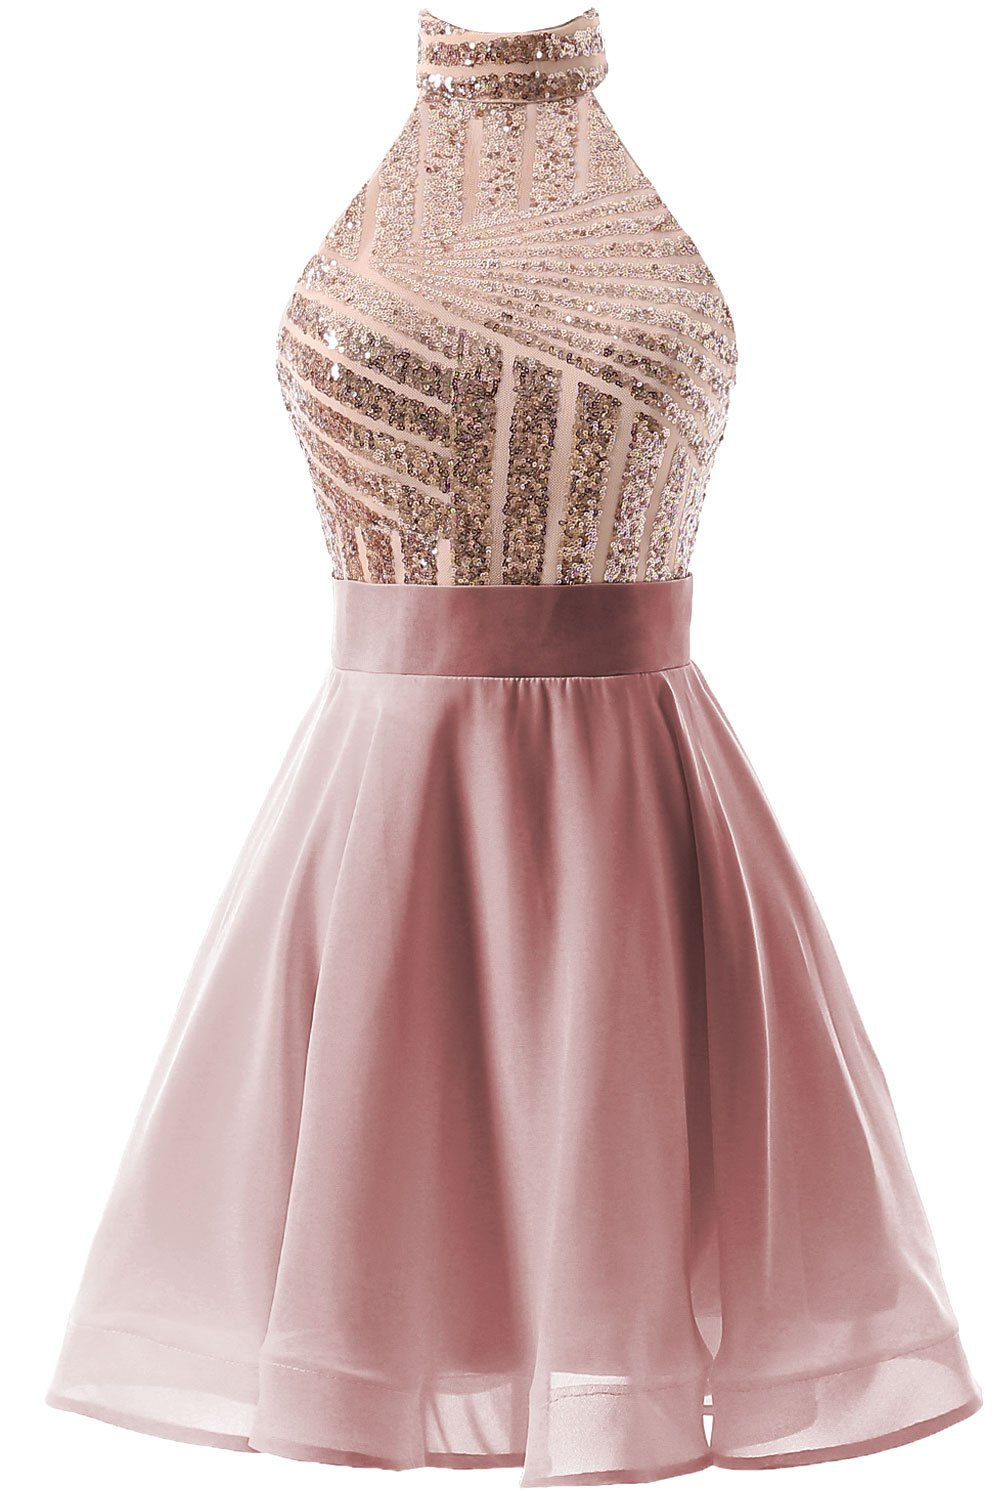 3c86838f5e6 DYS Women s Short Halter Prom Party Dress Backless Homecoming Dress for  Juniors Blush US 2